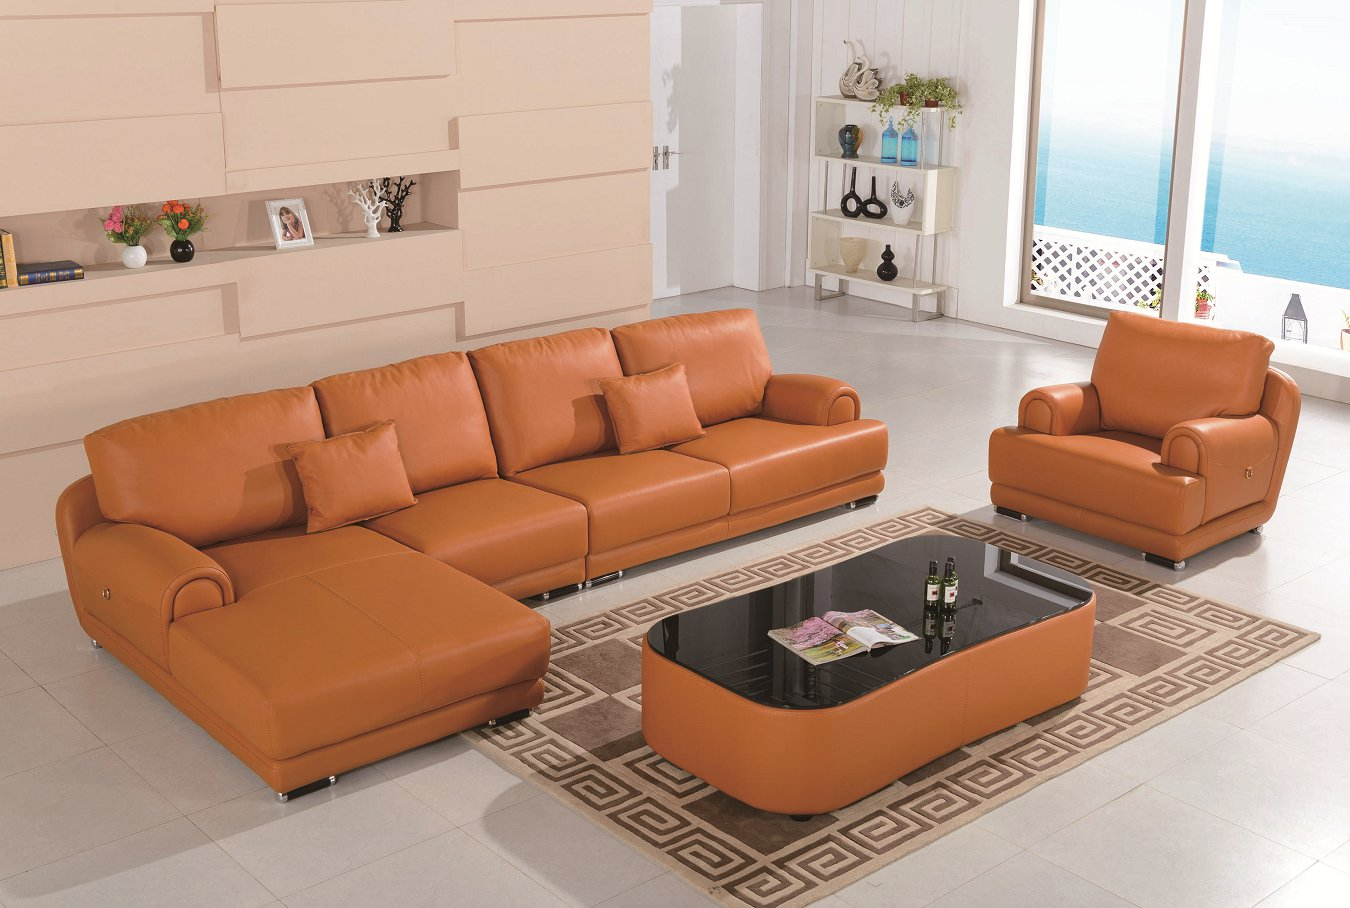 Luxury Furniture Sectional Leather Sofa